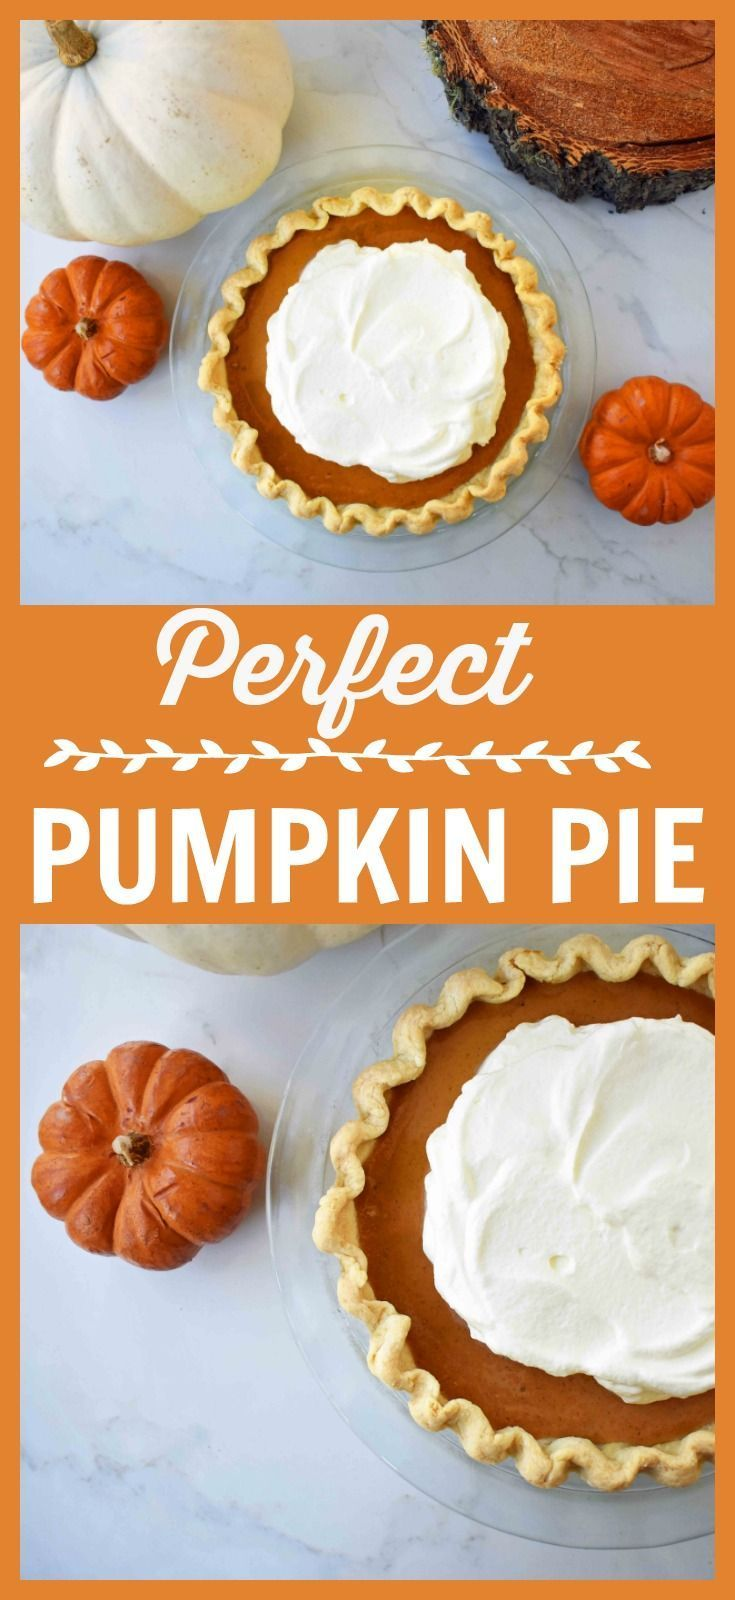 The Perfect Pumpkin Pie Is Silky Smooth Using Sweetened Condensed Milk Eggs And Warm Perfect Pumpkin Pie Pumpkin Pie Recipes Sweetened Condensed Milk Recipes